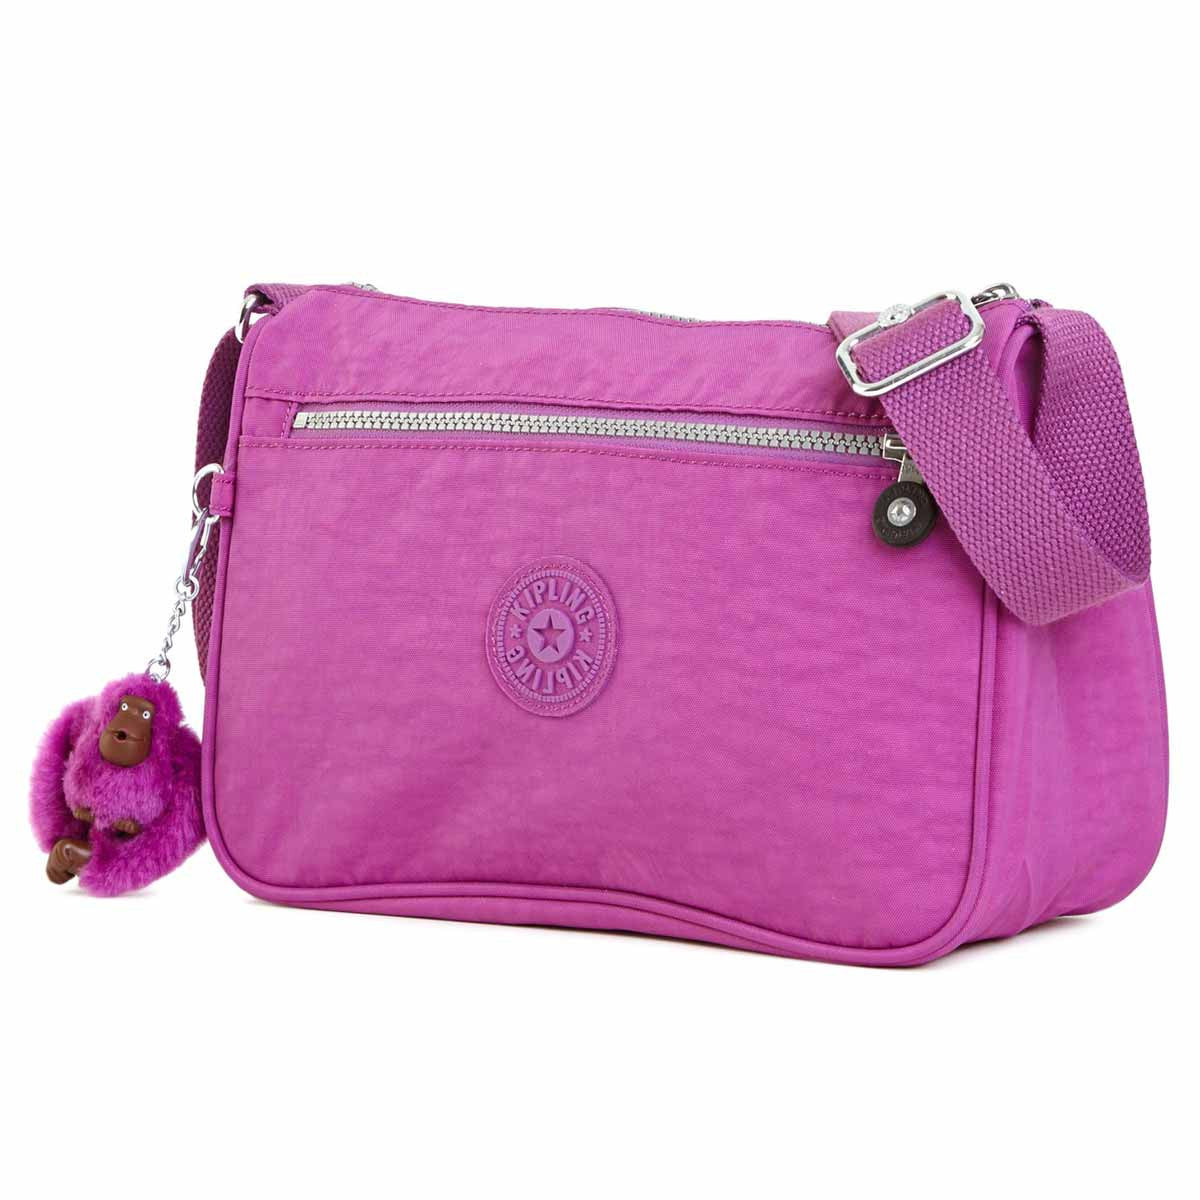 Kipling HB6490-500 Women's Callie Purple Q Nylon Crossbody Handbag